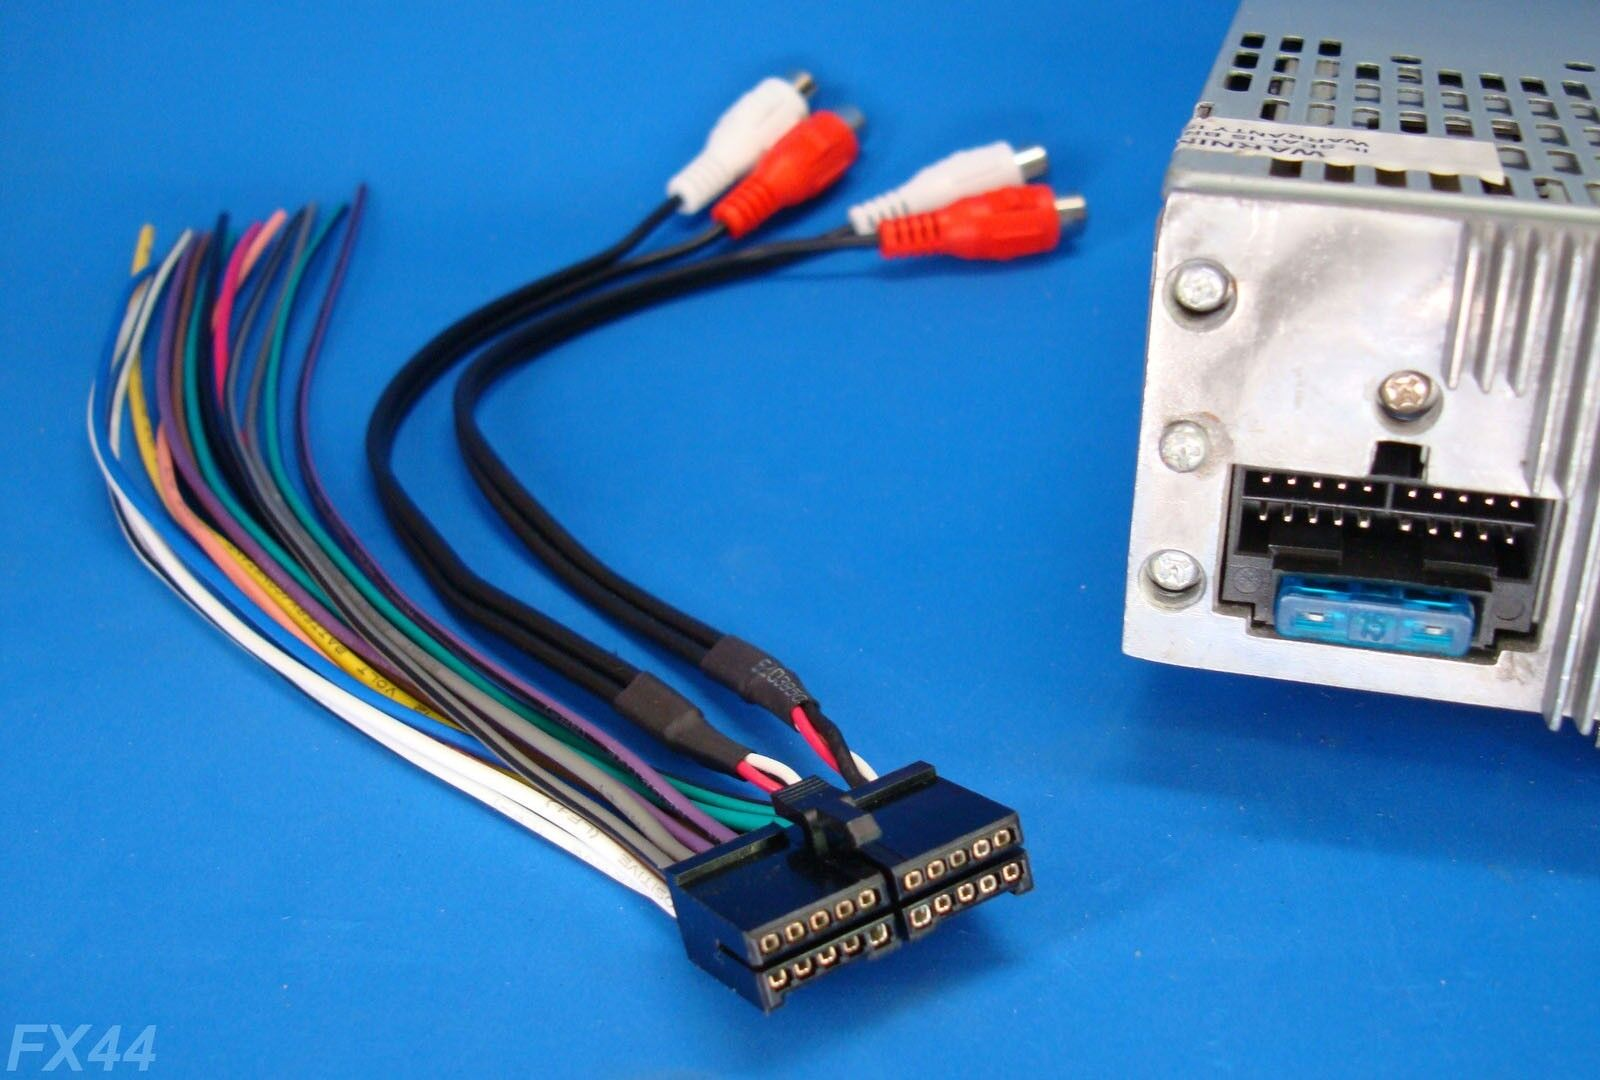 s l1600 xo vision 20 pin radio wire harness stereo power plug back clip Wiring Harness Diagram at bayanpartner.co